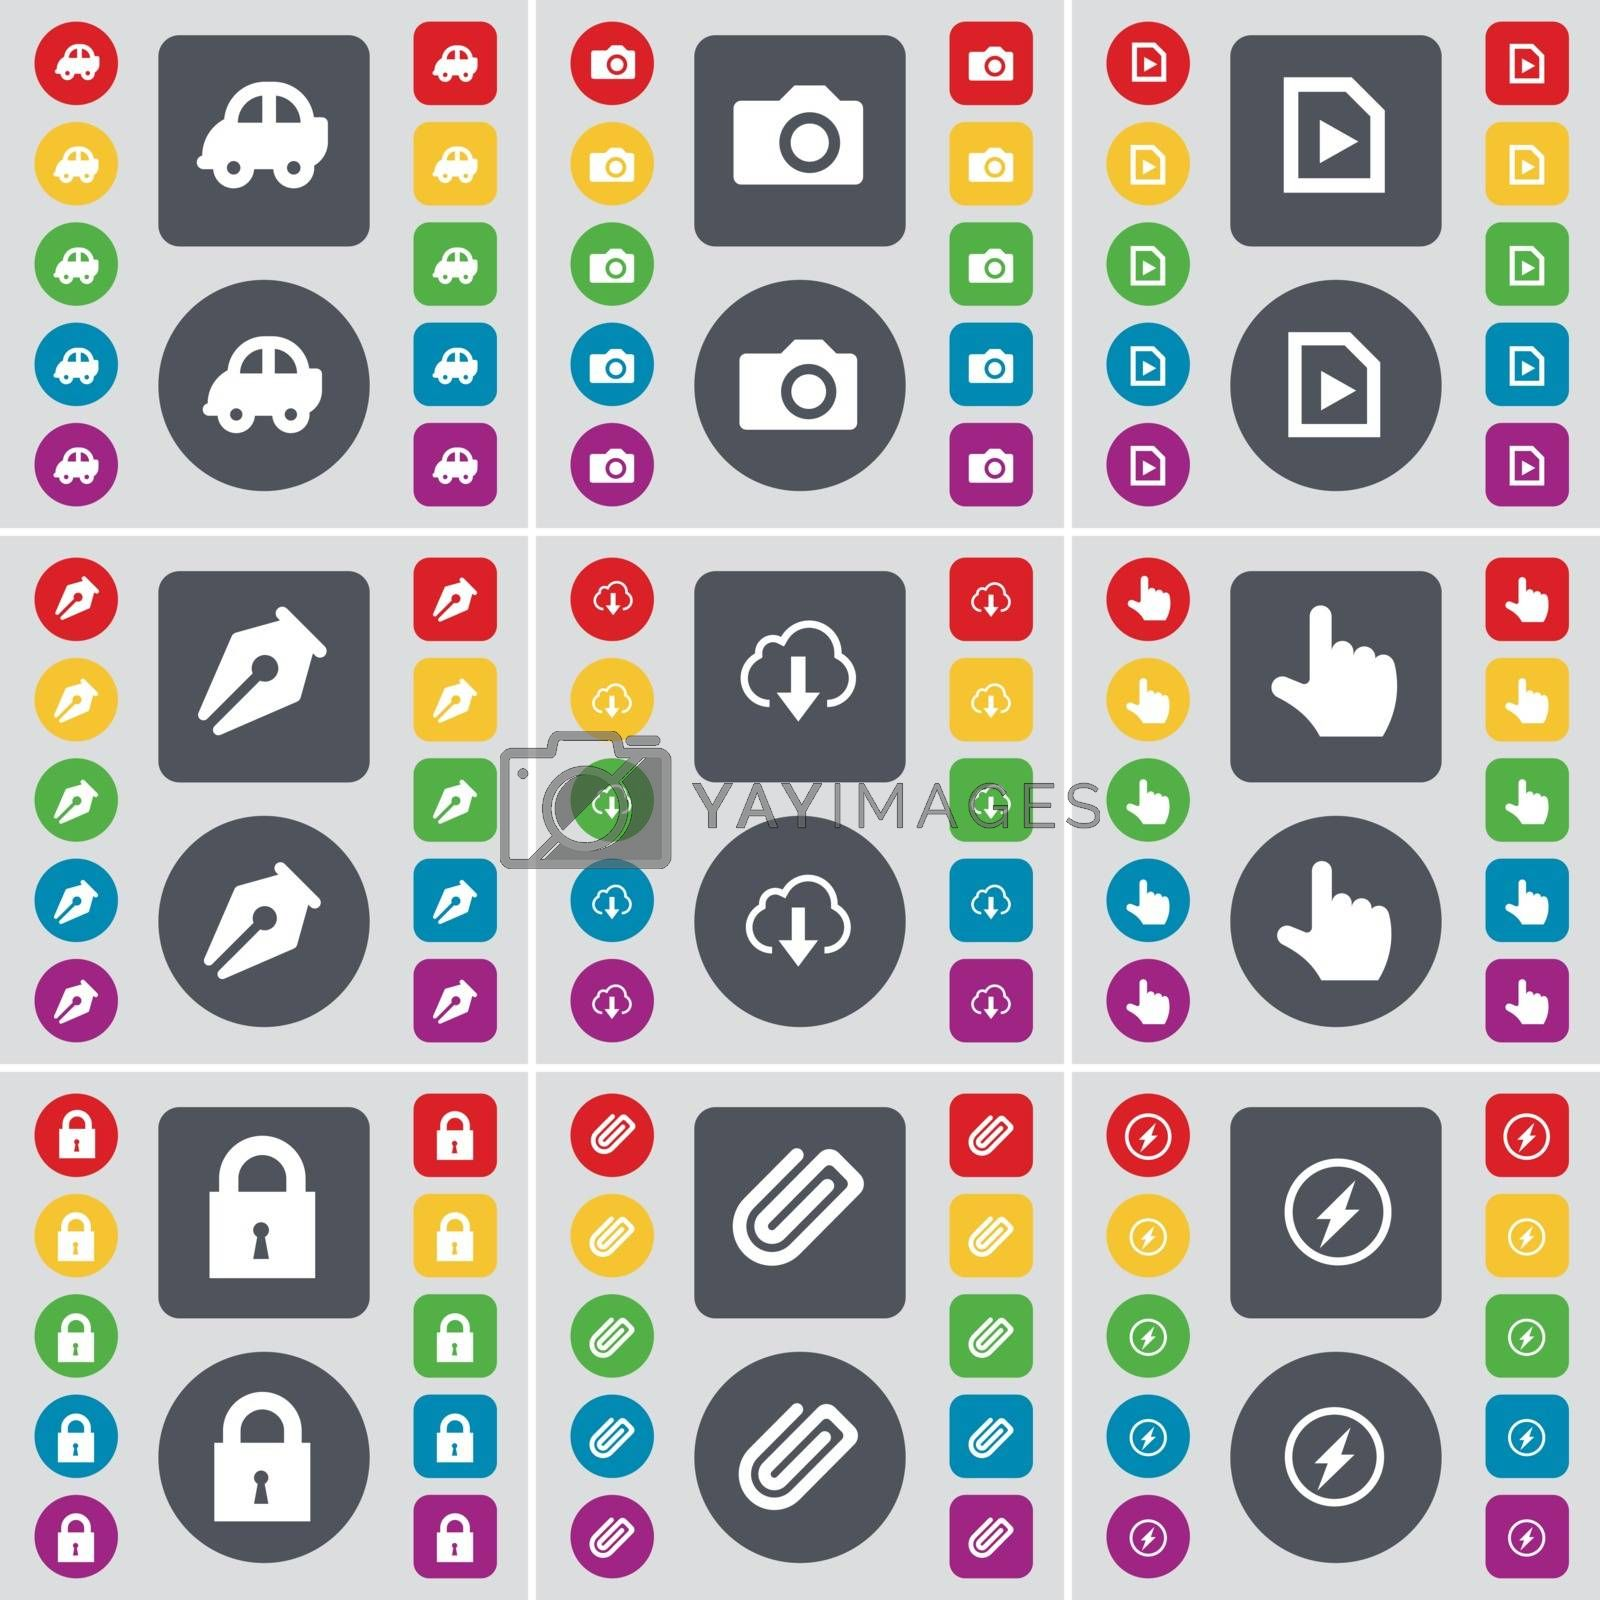 Royalty free image of Car, Camera, Media file, Ink pen, Cloud, Hand, Lock, Clip, Flash icon symbol. A large set of flat, colored buttons for your design. Vector by serhii_lohvyniuk